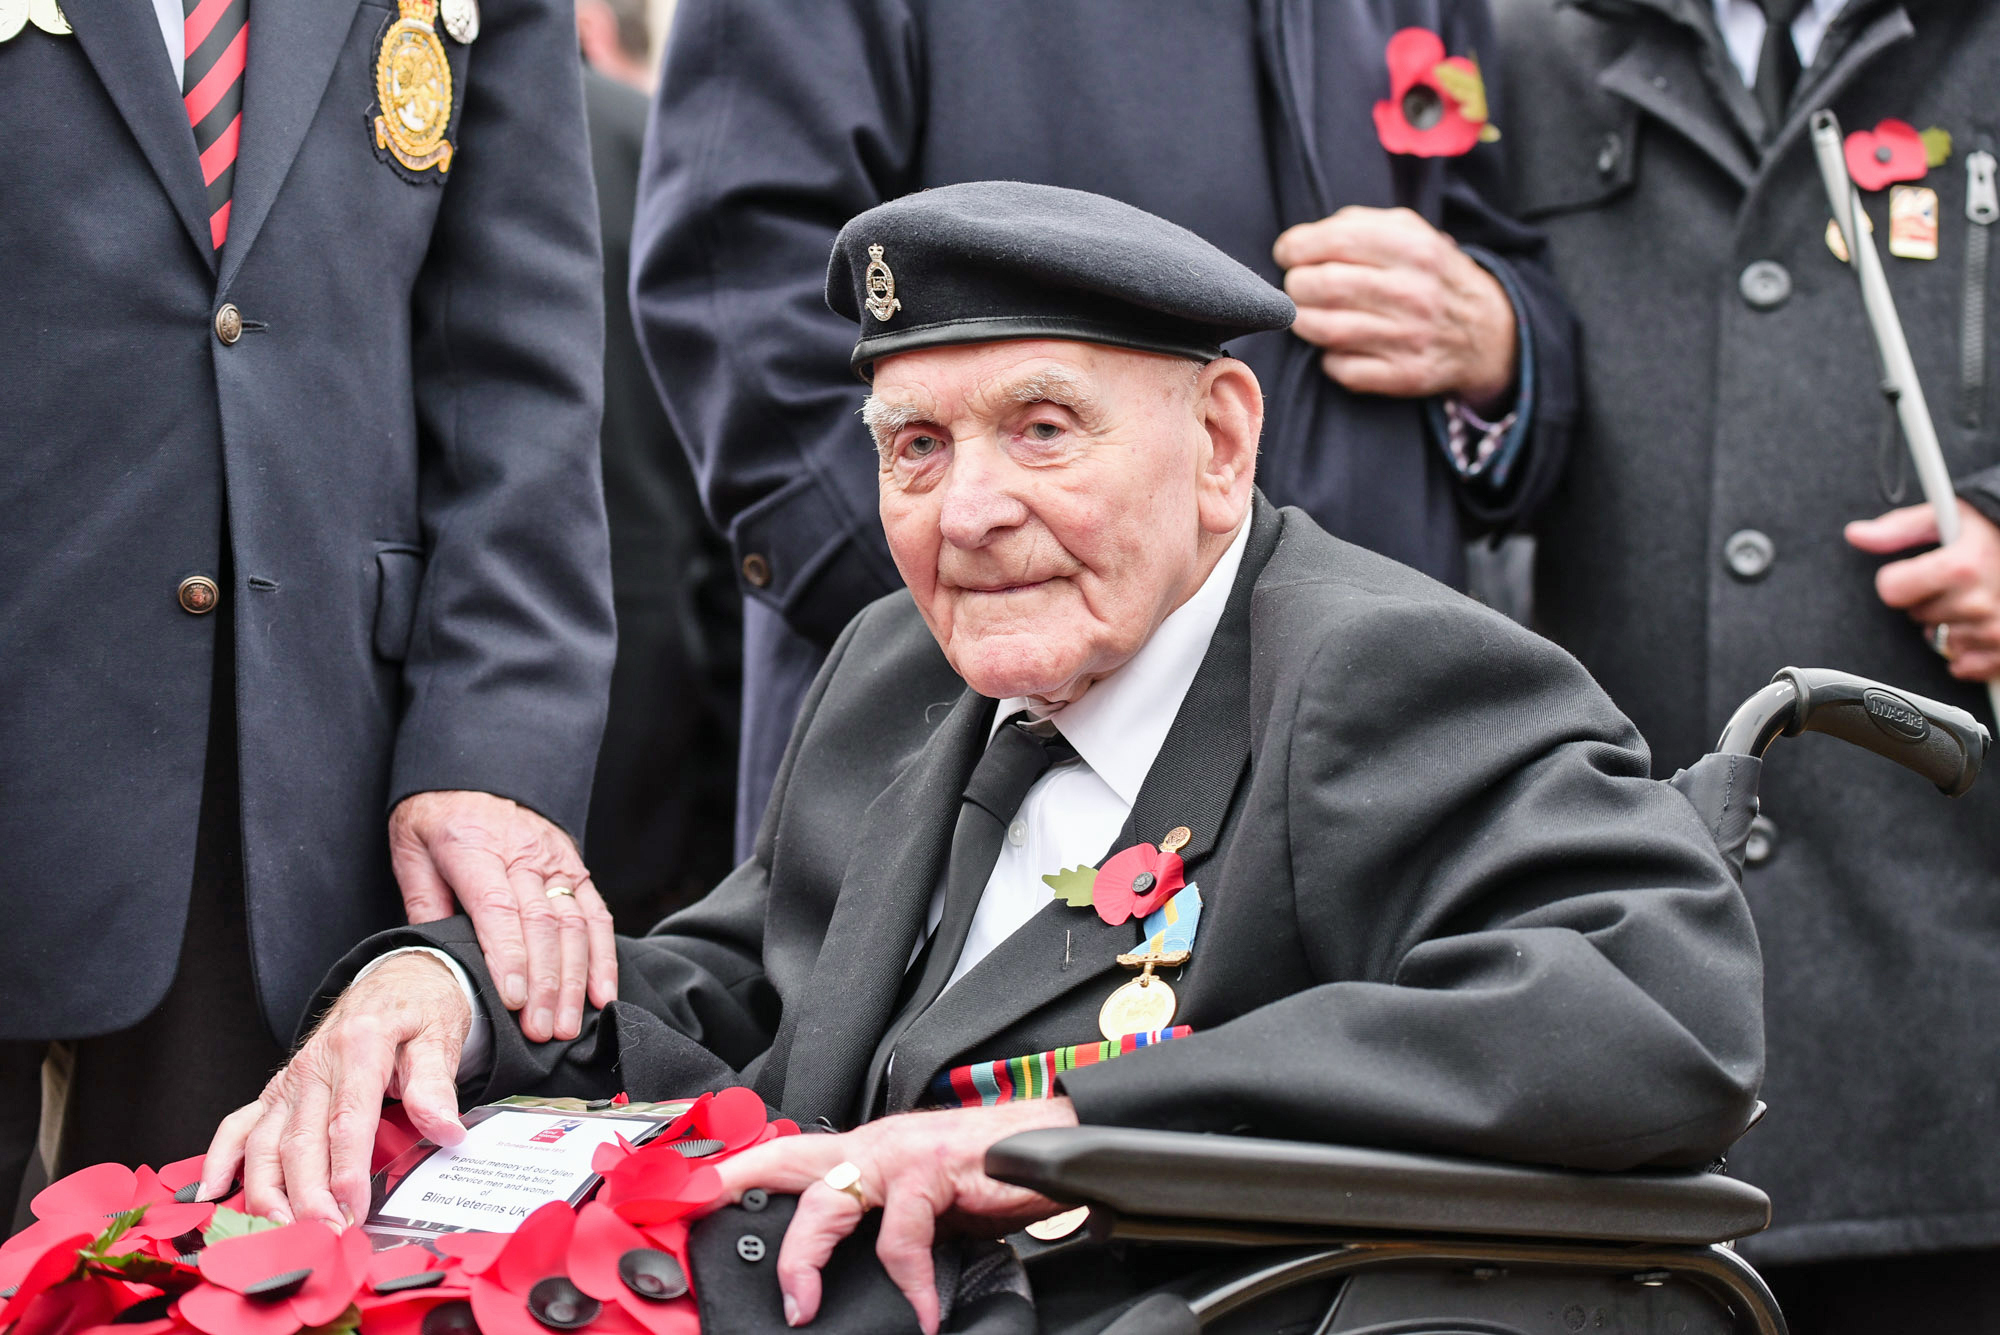 Undated handout photo issued by Blind Veterans UK of Ron Freer, who will be the oldest veteran to attend the cenotaph on Sunday for the remembrance service. PRESS ASSOCIATION Photo. Issue date: Thursday November 8, 2018. The blind veteran